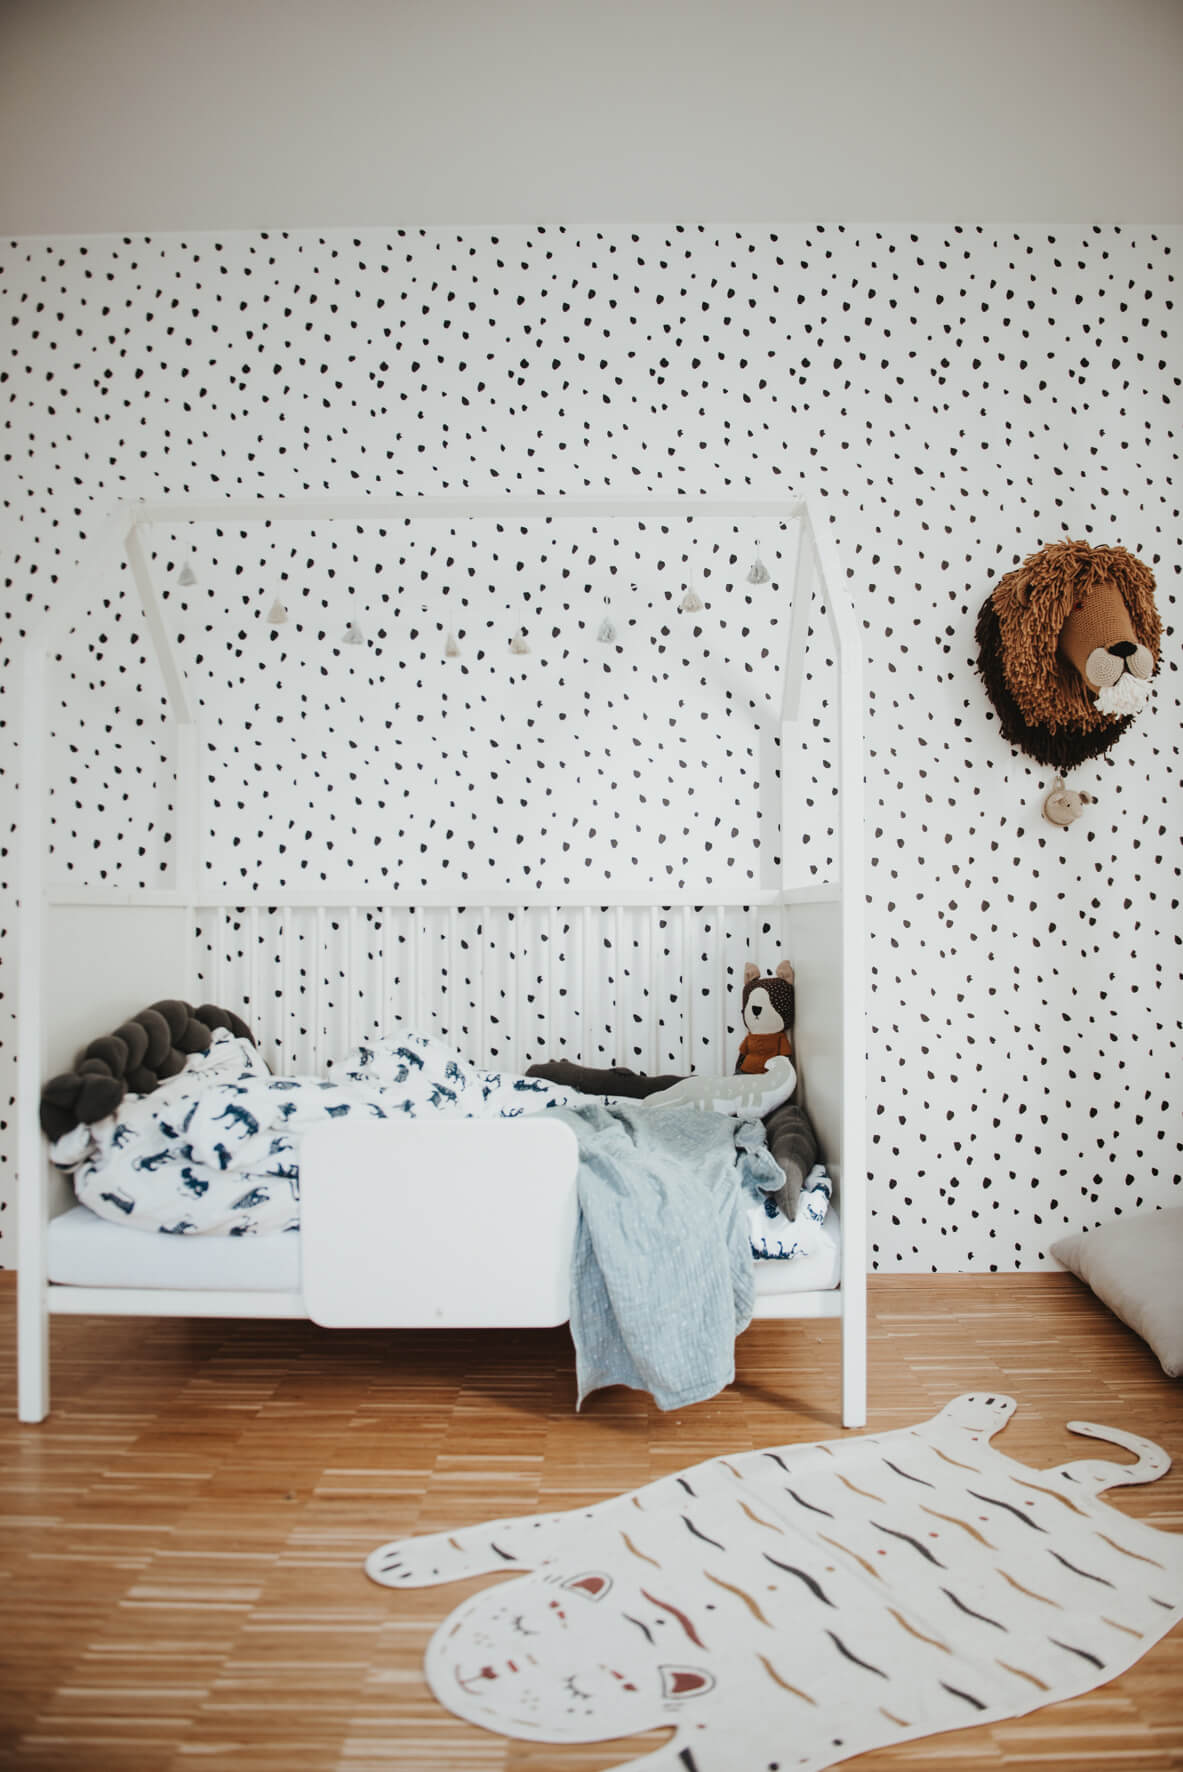 Black and white boys bedroom with white house shaped bed, animal spots removable wallpaper and tiger rug